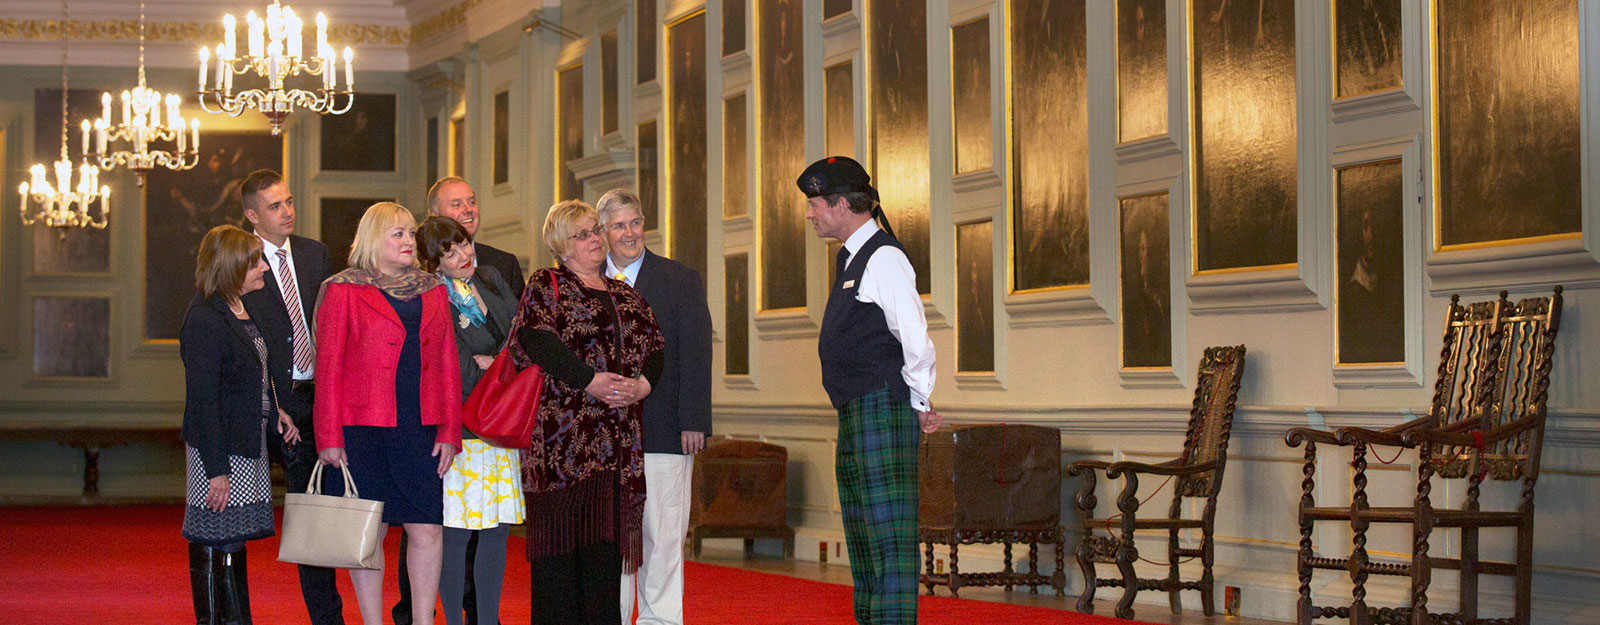 An Exclusive Evening Tour at the Palace of Holyroodhouse